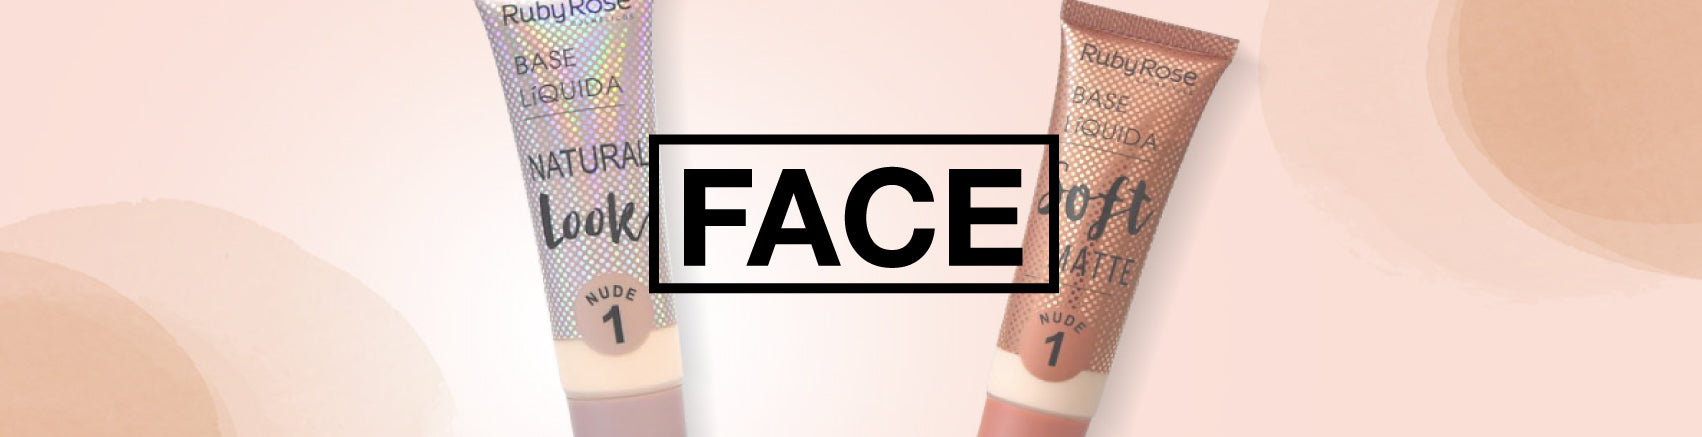 face ruby rose makeup lebanon delivery online